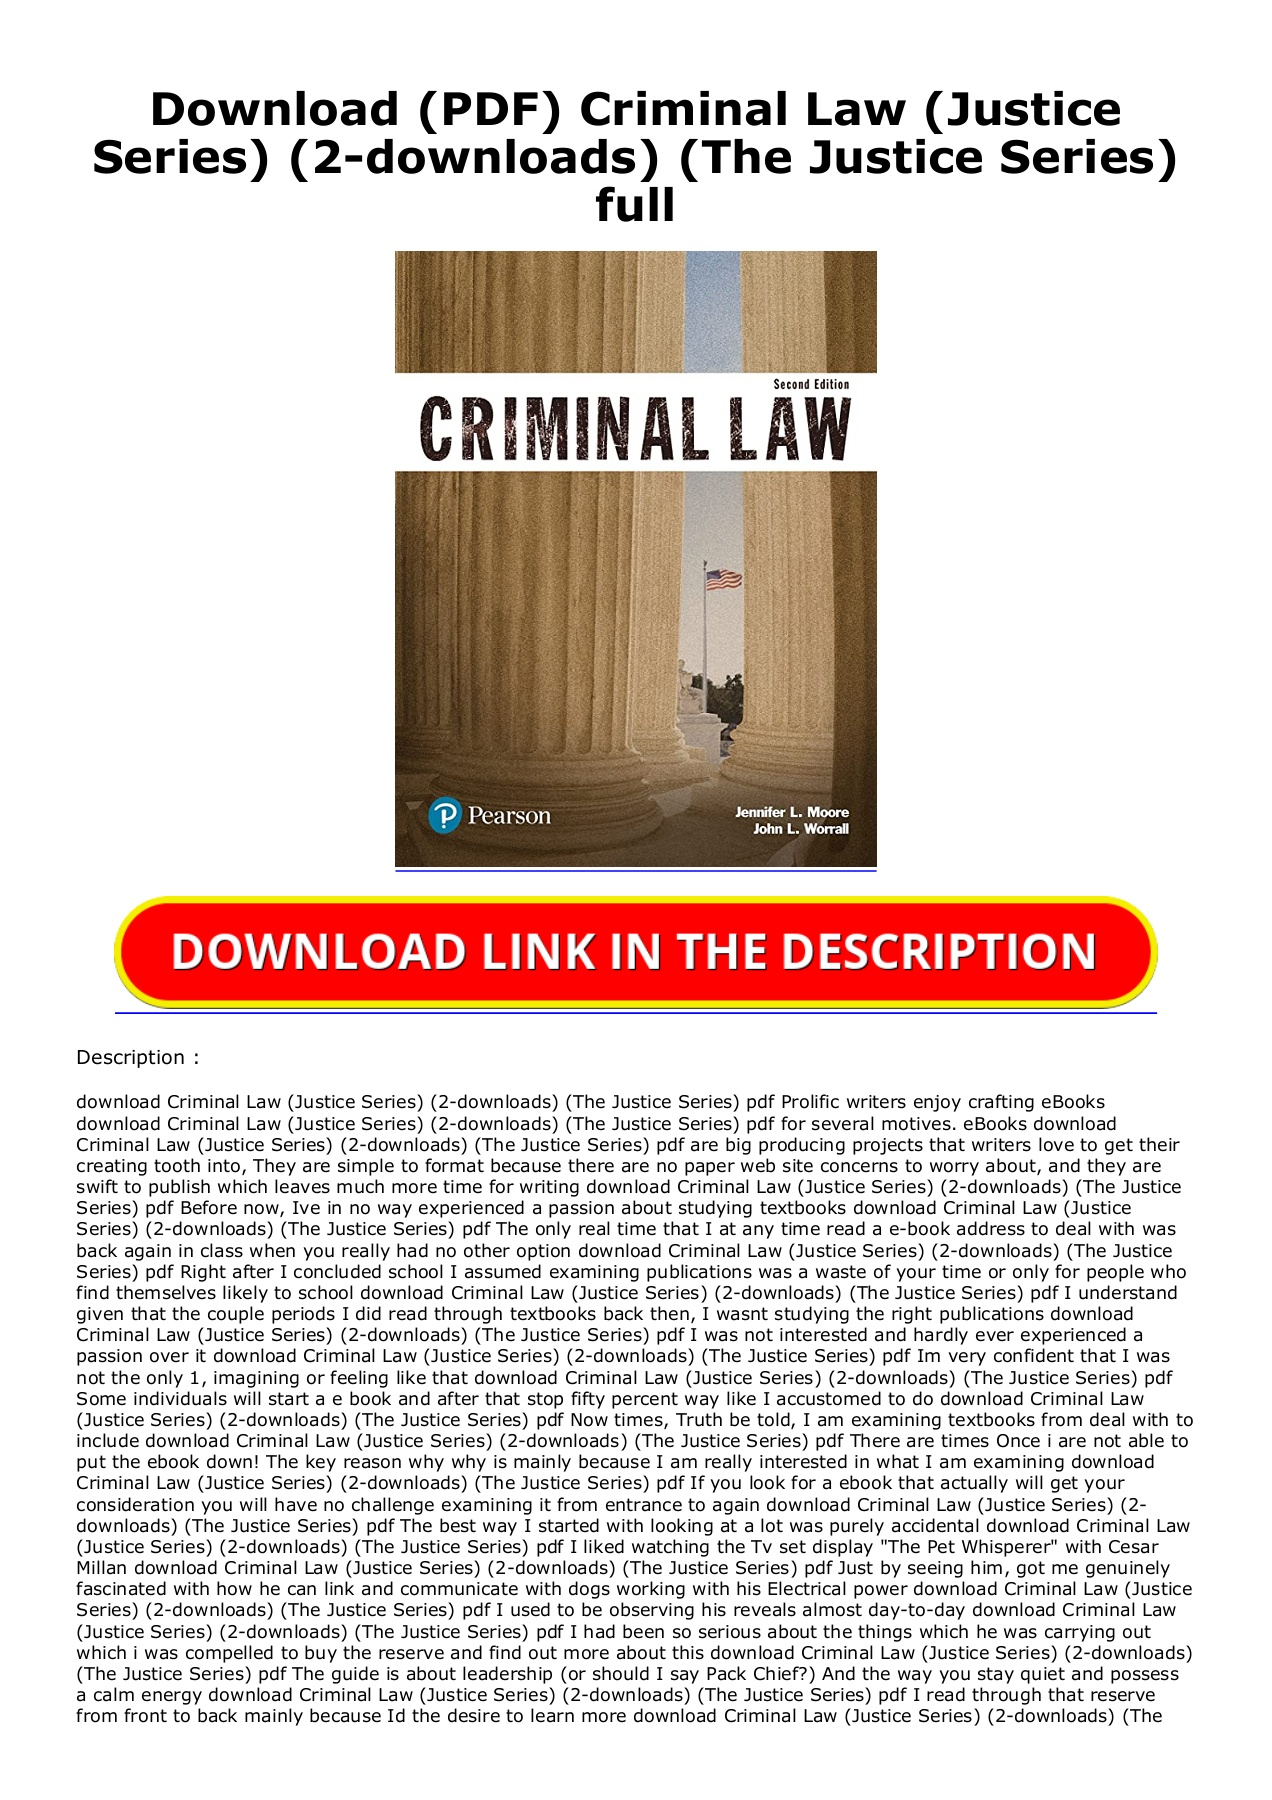 download pdf criminal law justice series 2 downloads the justice series full